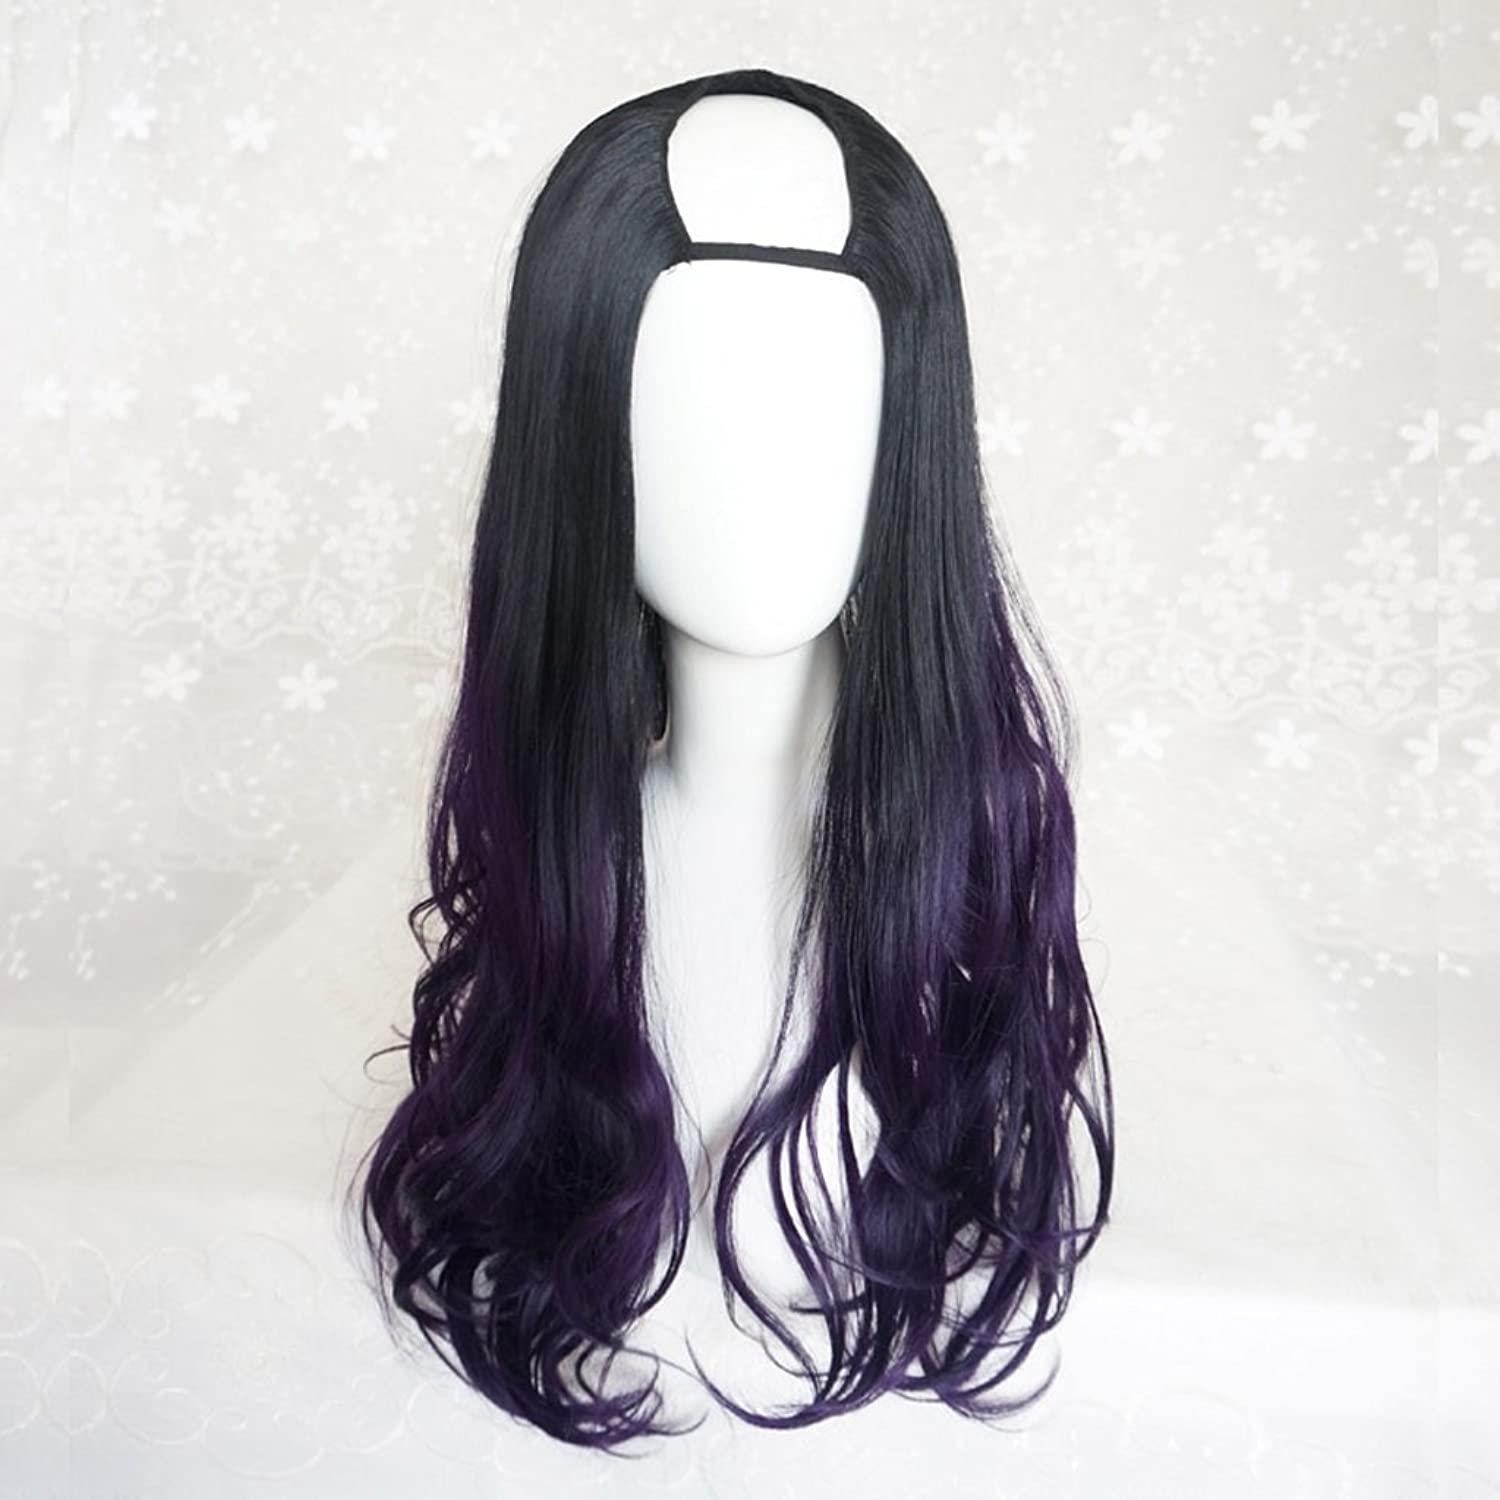 Large Wave curl Wig Black Gradient gold, Women's Cosplay Long MicroVolume Wig, Sexy Fluffy Synthetic lace Wig HUACANG (color   Black and Purple)